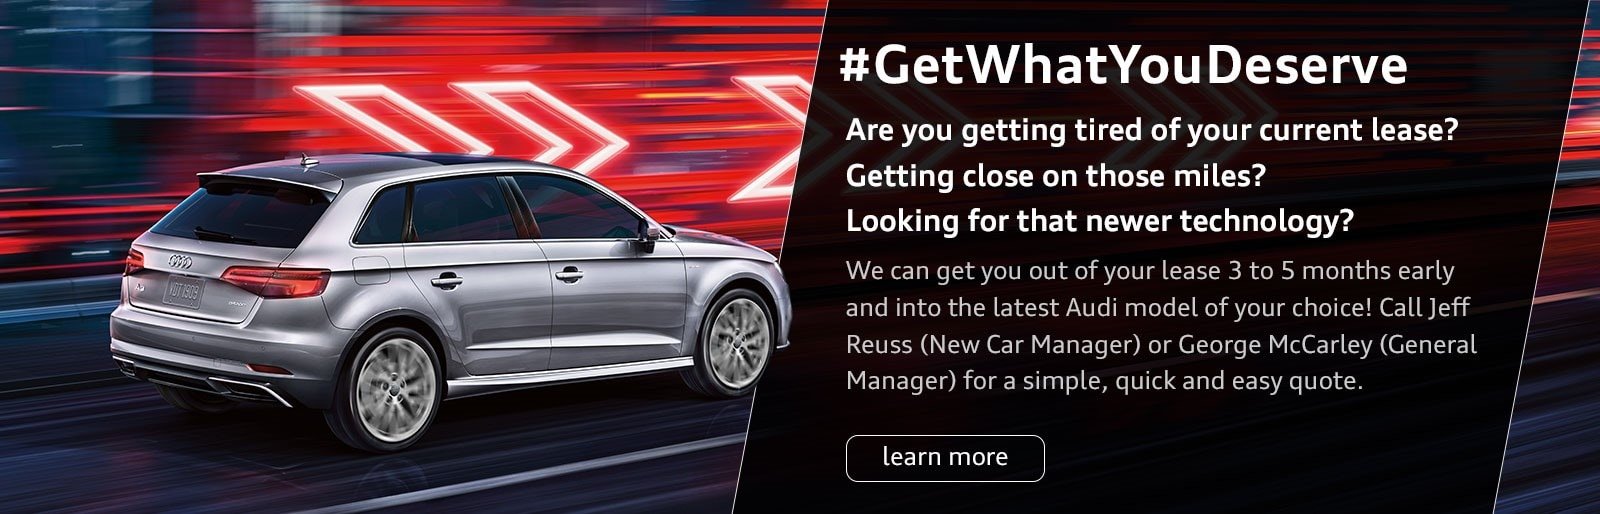 Audi Bedford New Used Luxury Car And SUV Dealer Serving - Who owns audi